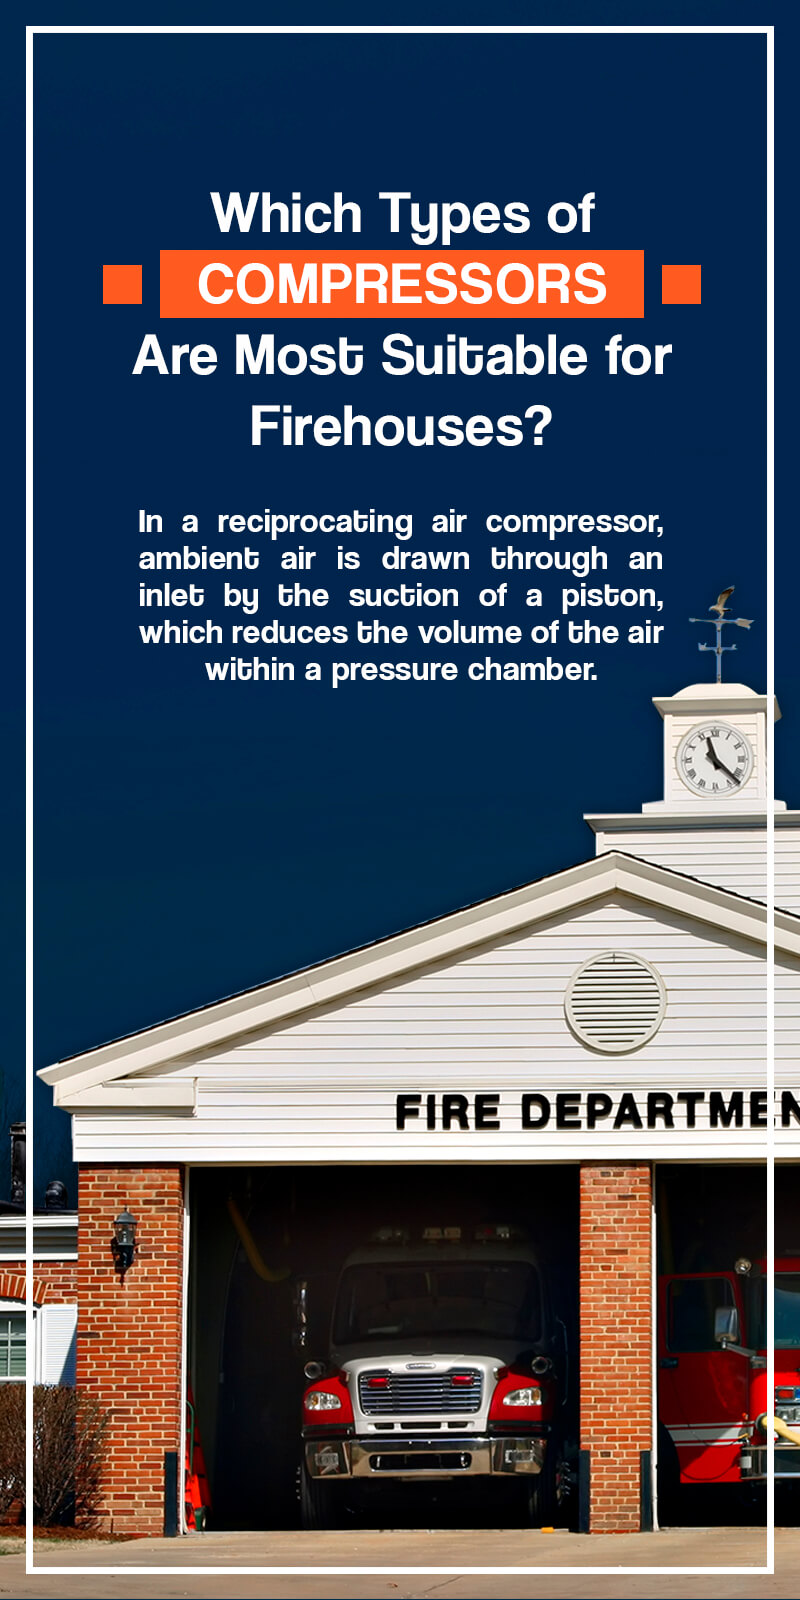 Which types of compressors are most suitable for firehouses